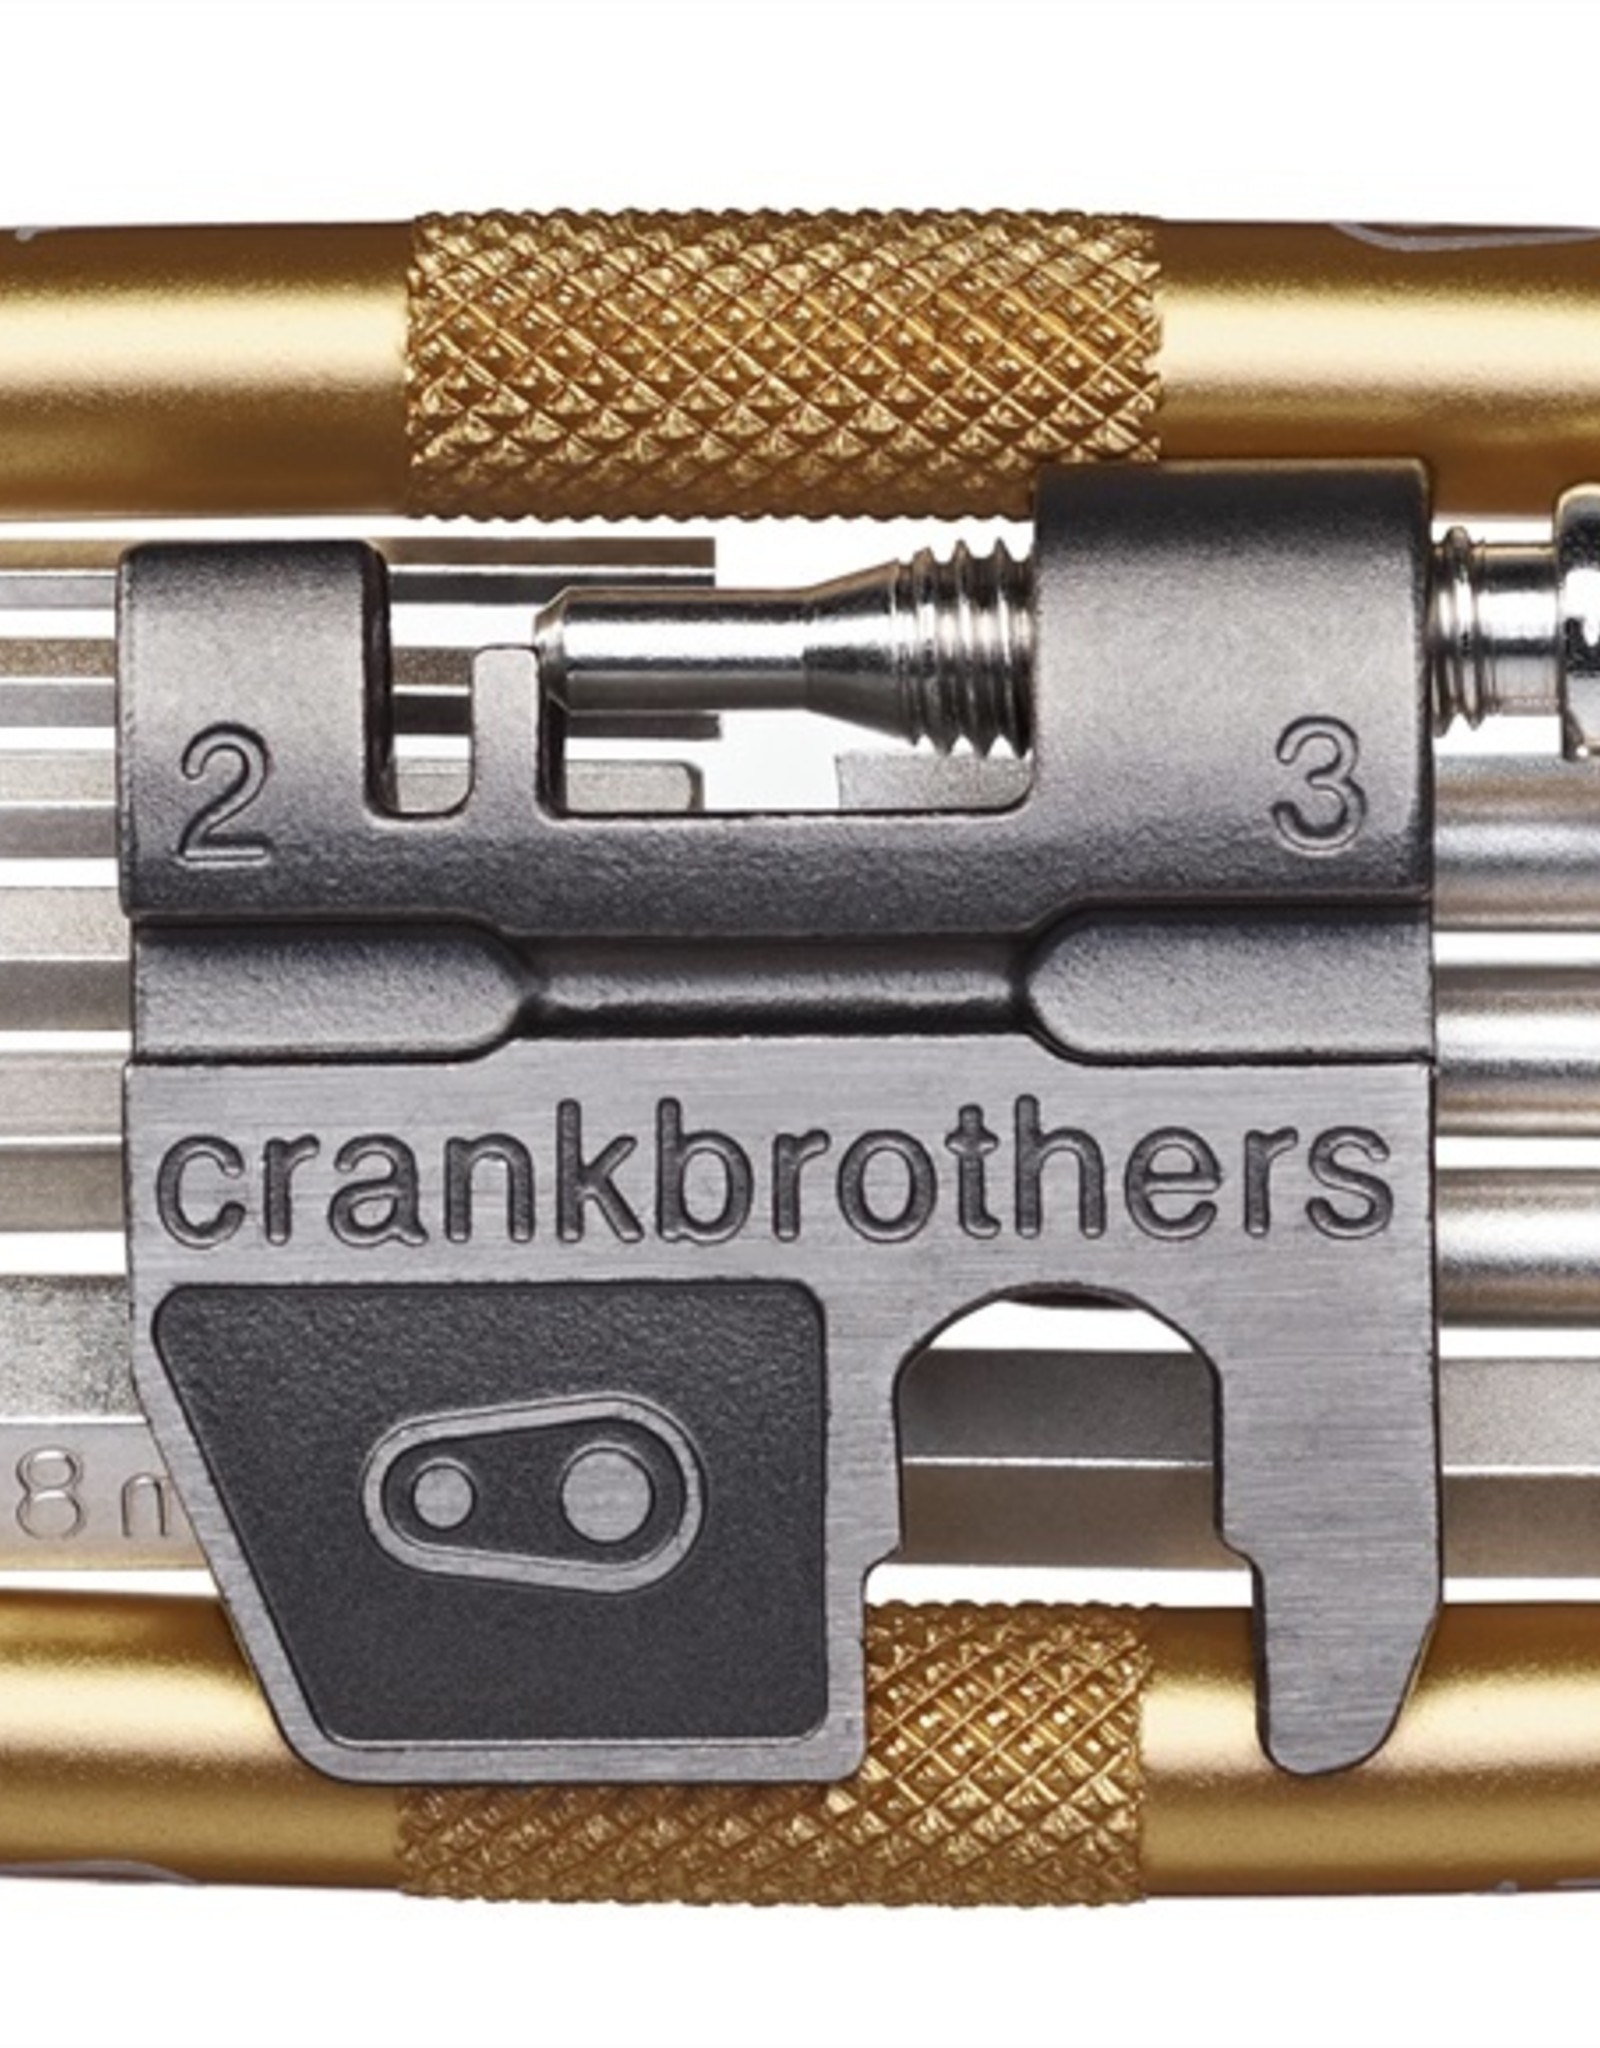 Crankbrothers CrankBrothers Multi Outil 17 Gold